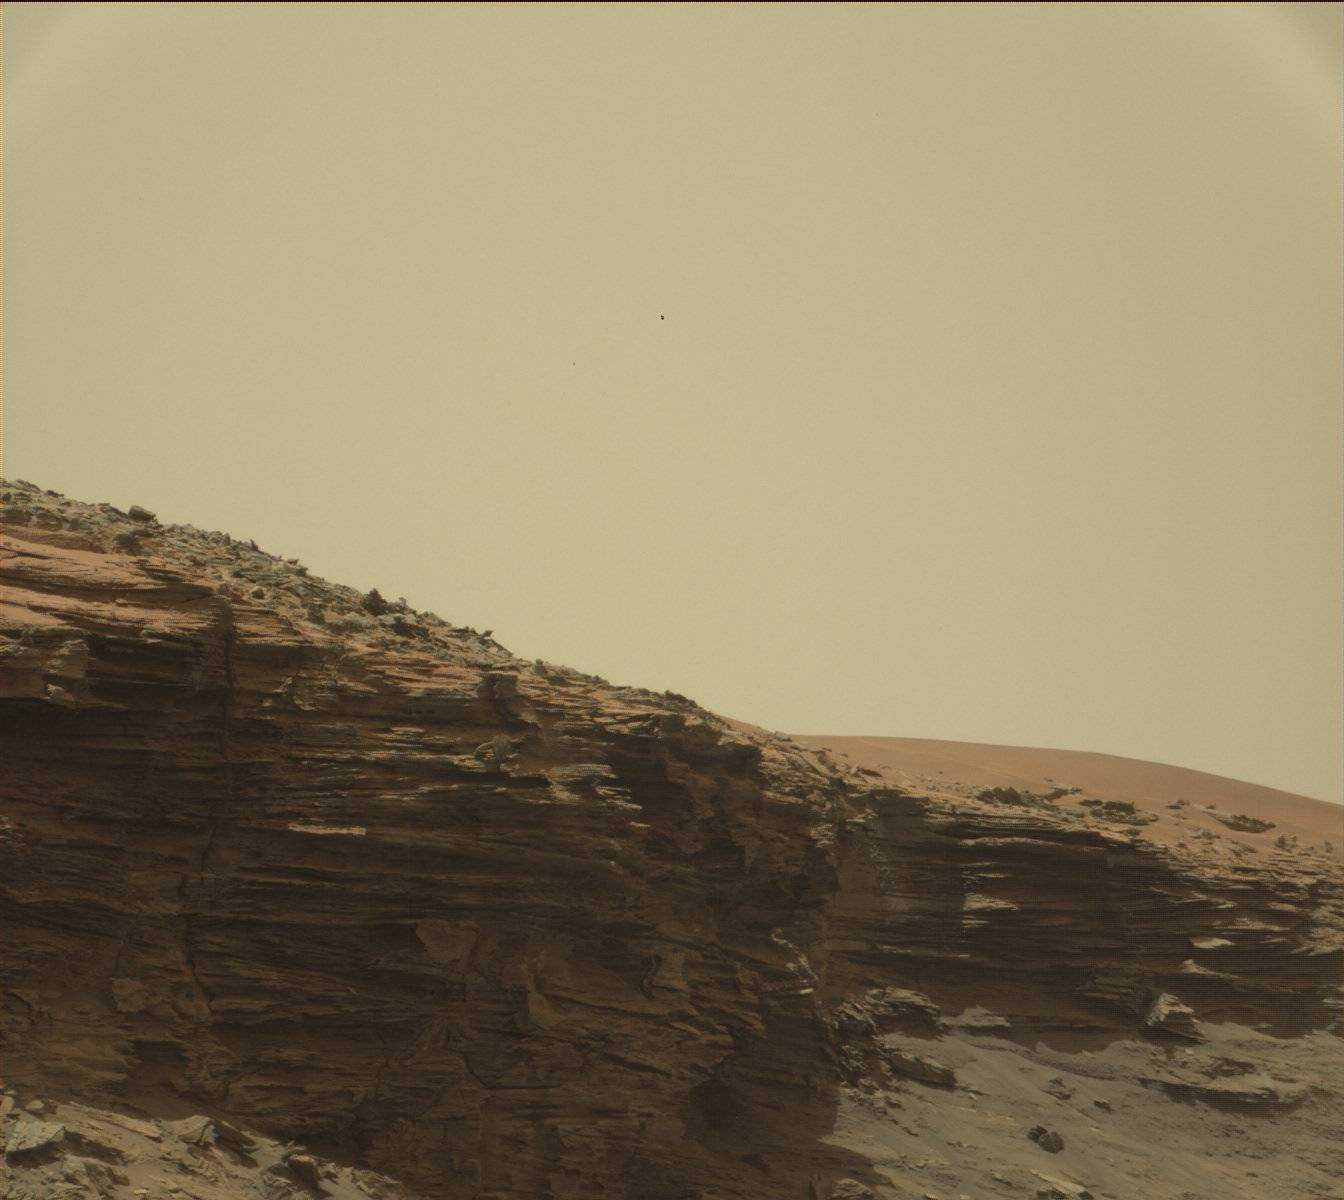 http://mars.jpl.nasa.gov/msl-raw-images/msss/01439/mcam/1439MR0071160090702833E01_DXXX.jpg